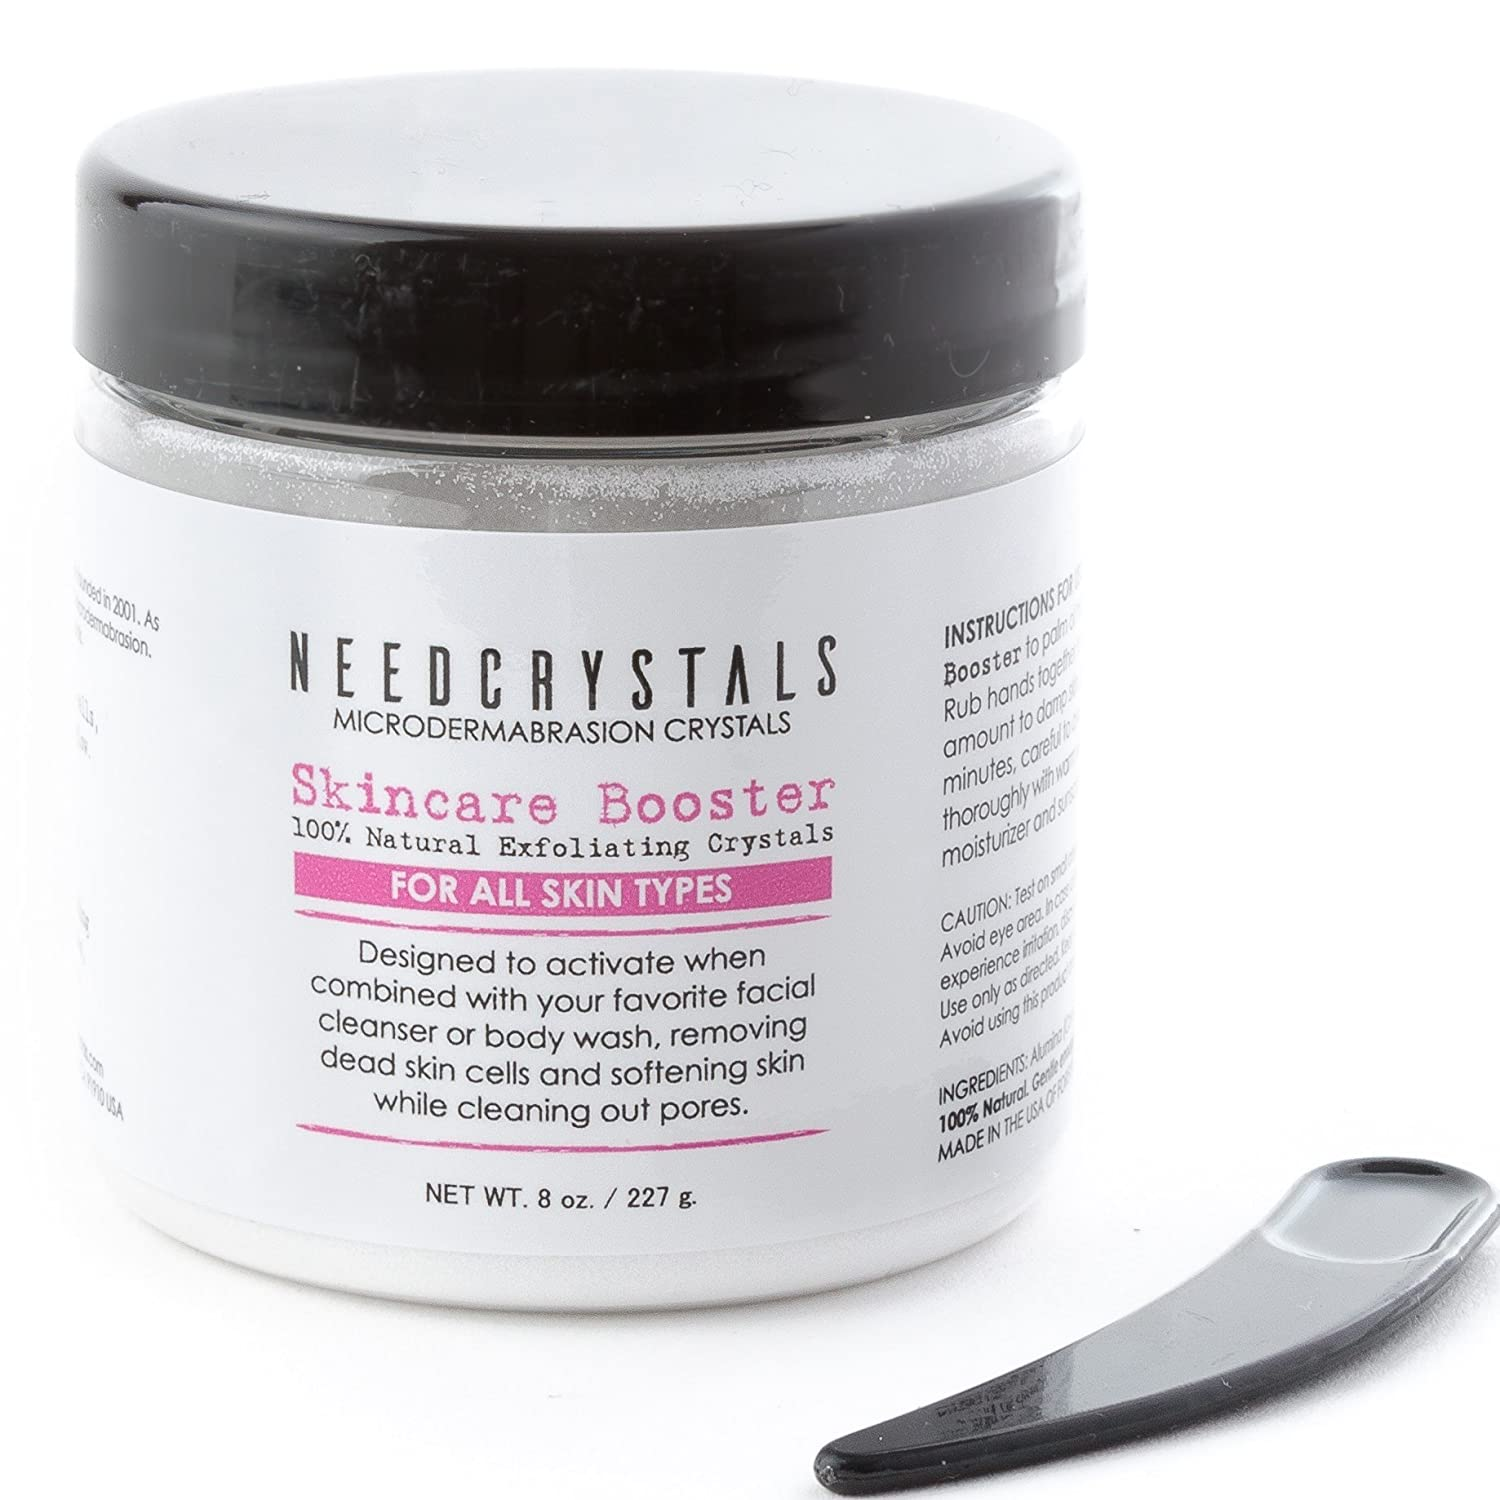 NeedCrystals Microdermabrasion Crystals, DIY Face Scrub. Natural Facial Exfoliator for Dull or Dry Skin Improves Acne Scars, Blackheads, Pore Size, Wrinkles, Blemishes & Skin Texture. 8 oz 8OZWAO120